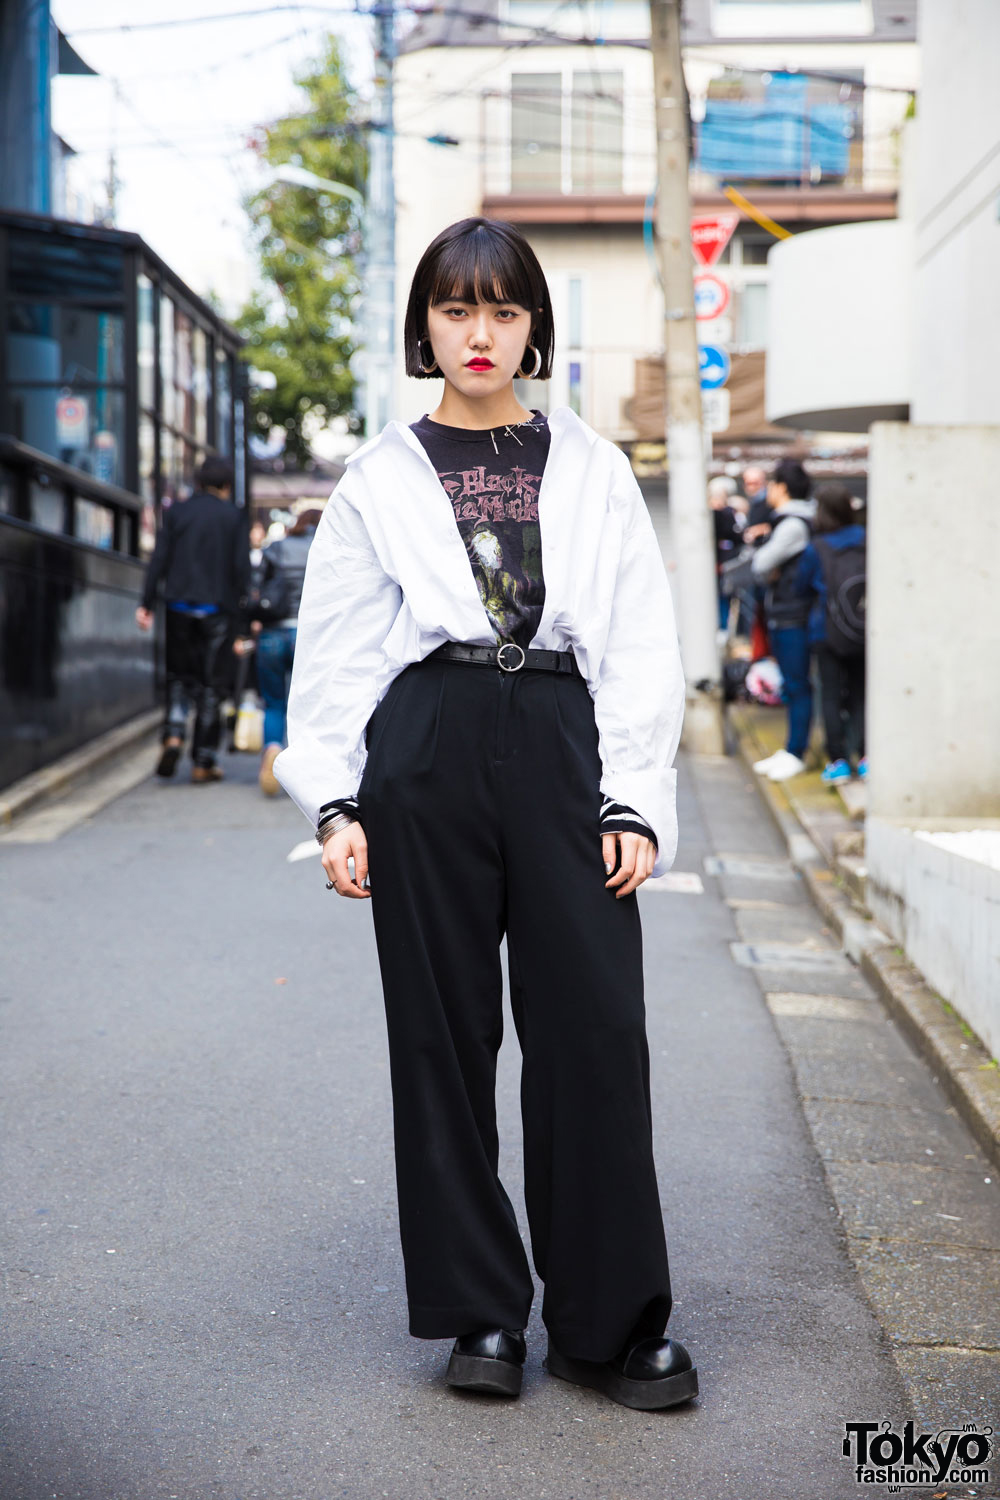 Harajuku Girl In Black White Minimalist Style W Vintage Metal T Shirt Safety Pins